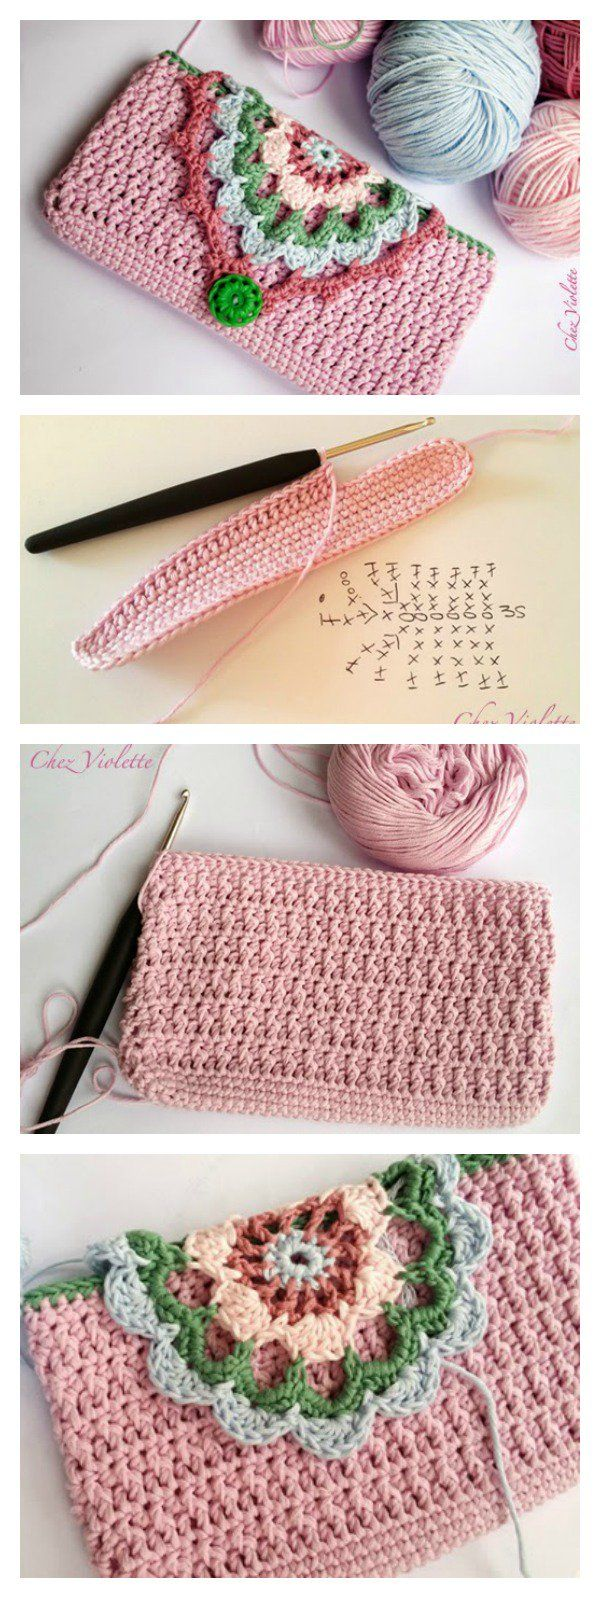 Fancy Phone Case Free Crochet Pattern | Teléfono, Lujos y Ganchillo